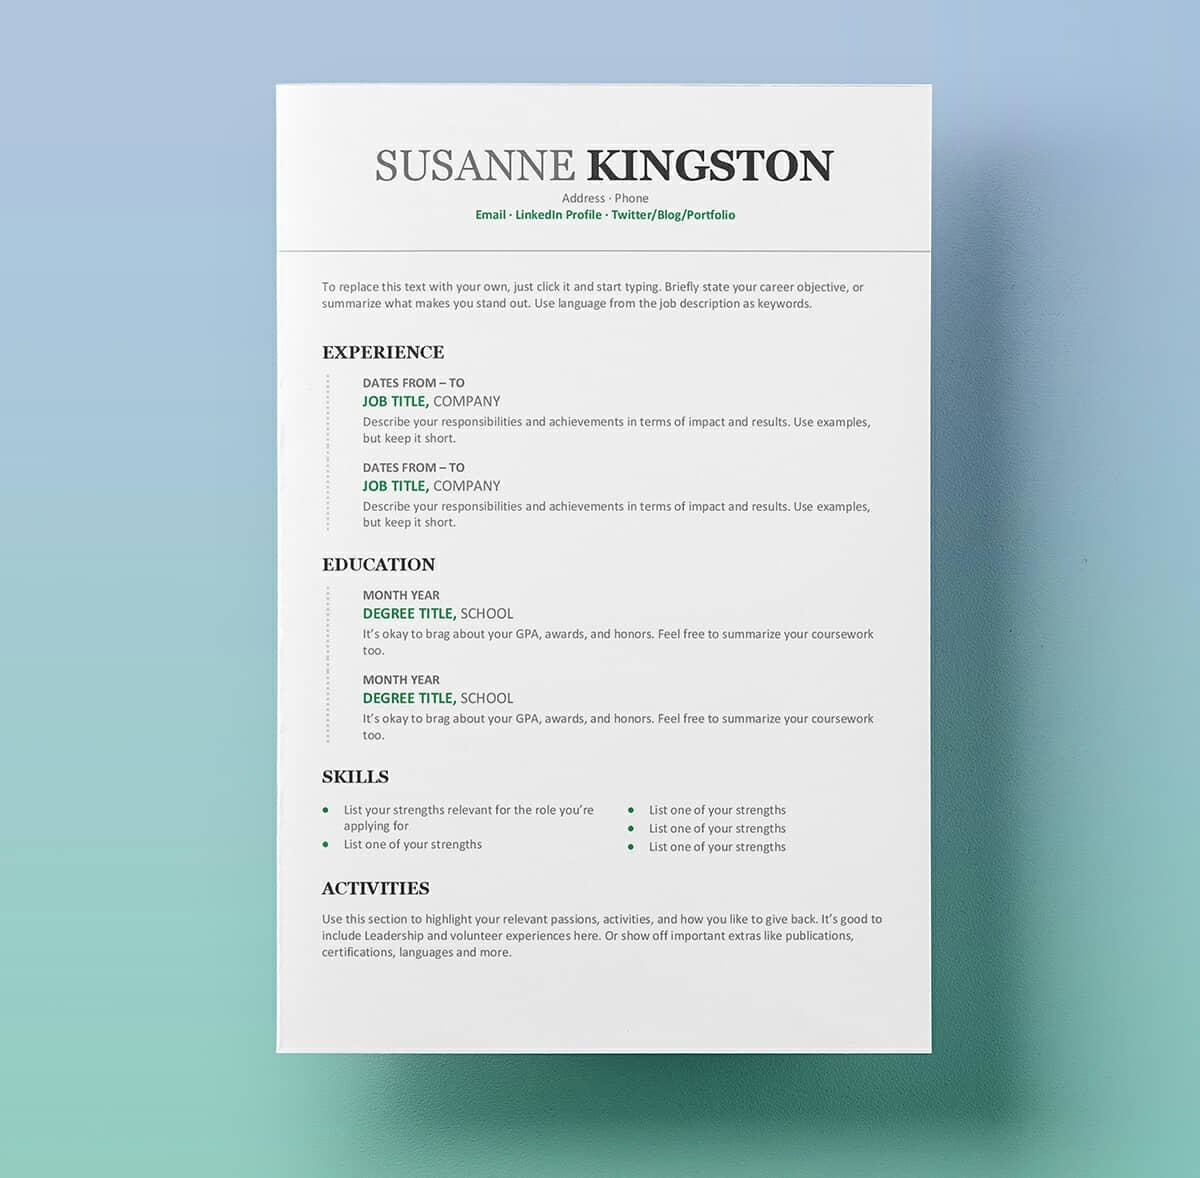 Template Resume Microsoft Word